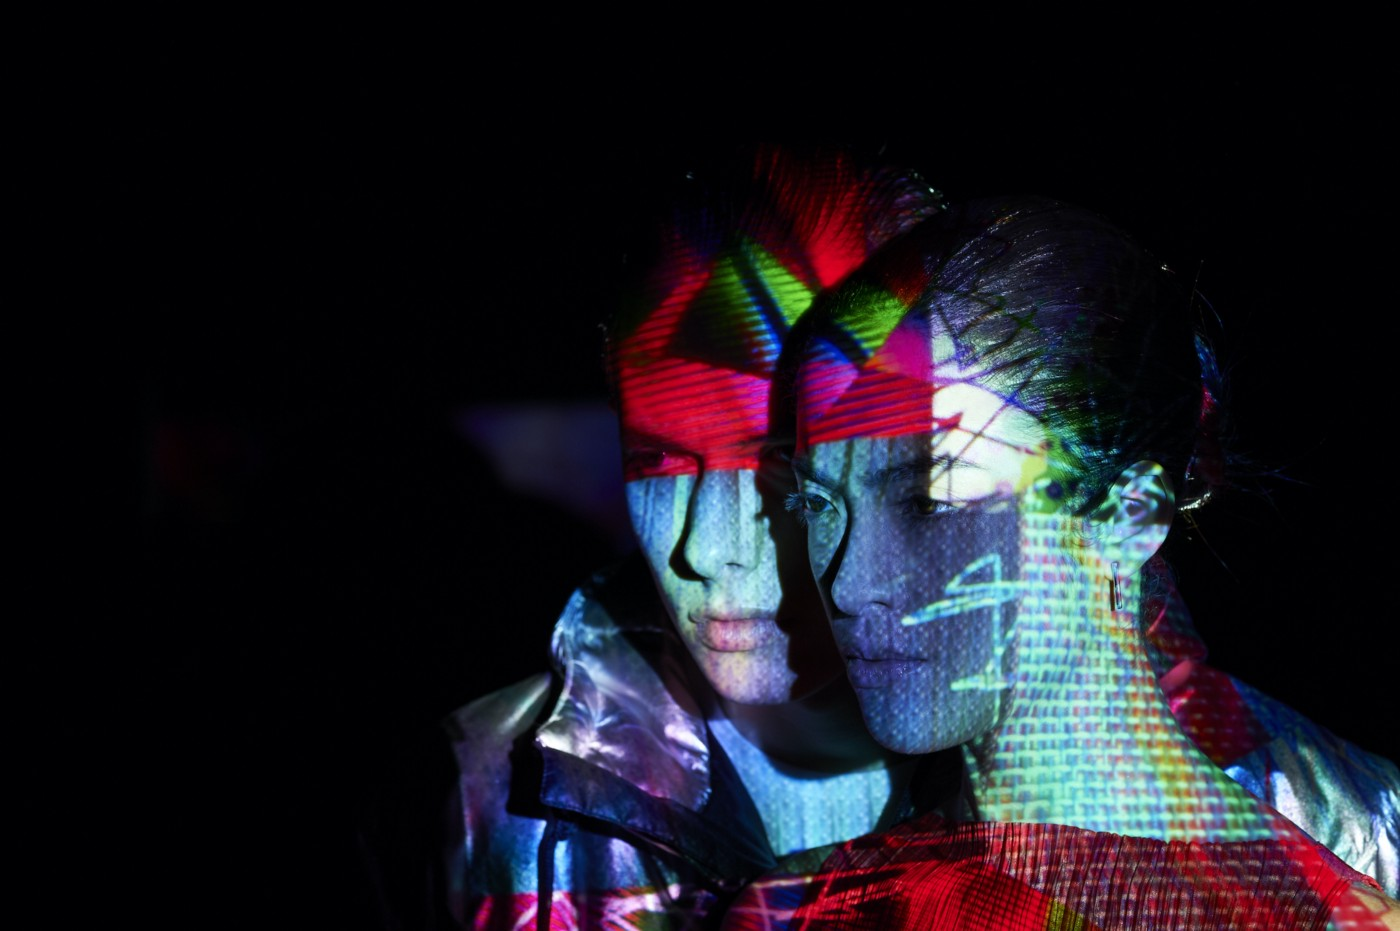 Two people standing close together in the dark with colorful, abstract shapes projected onto them.